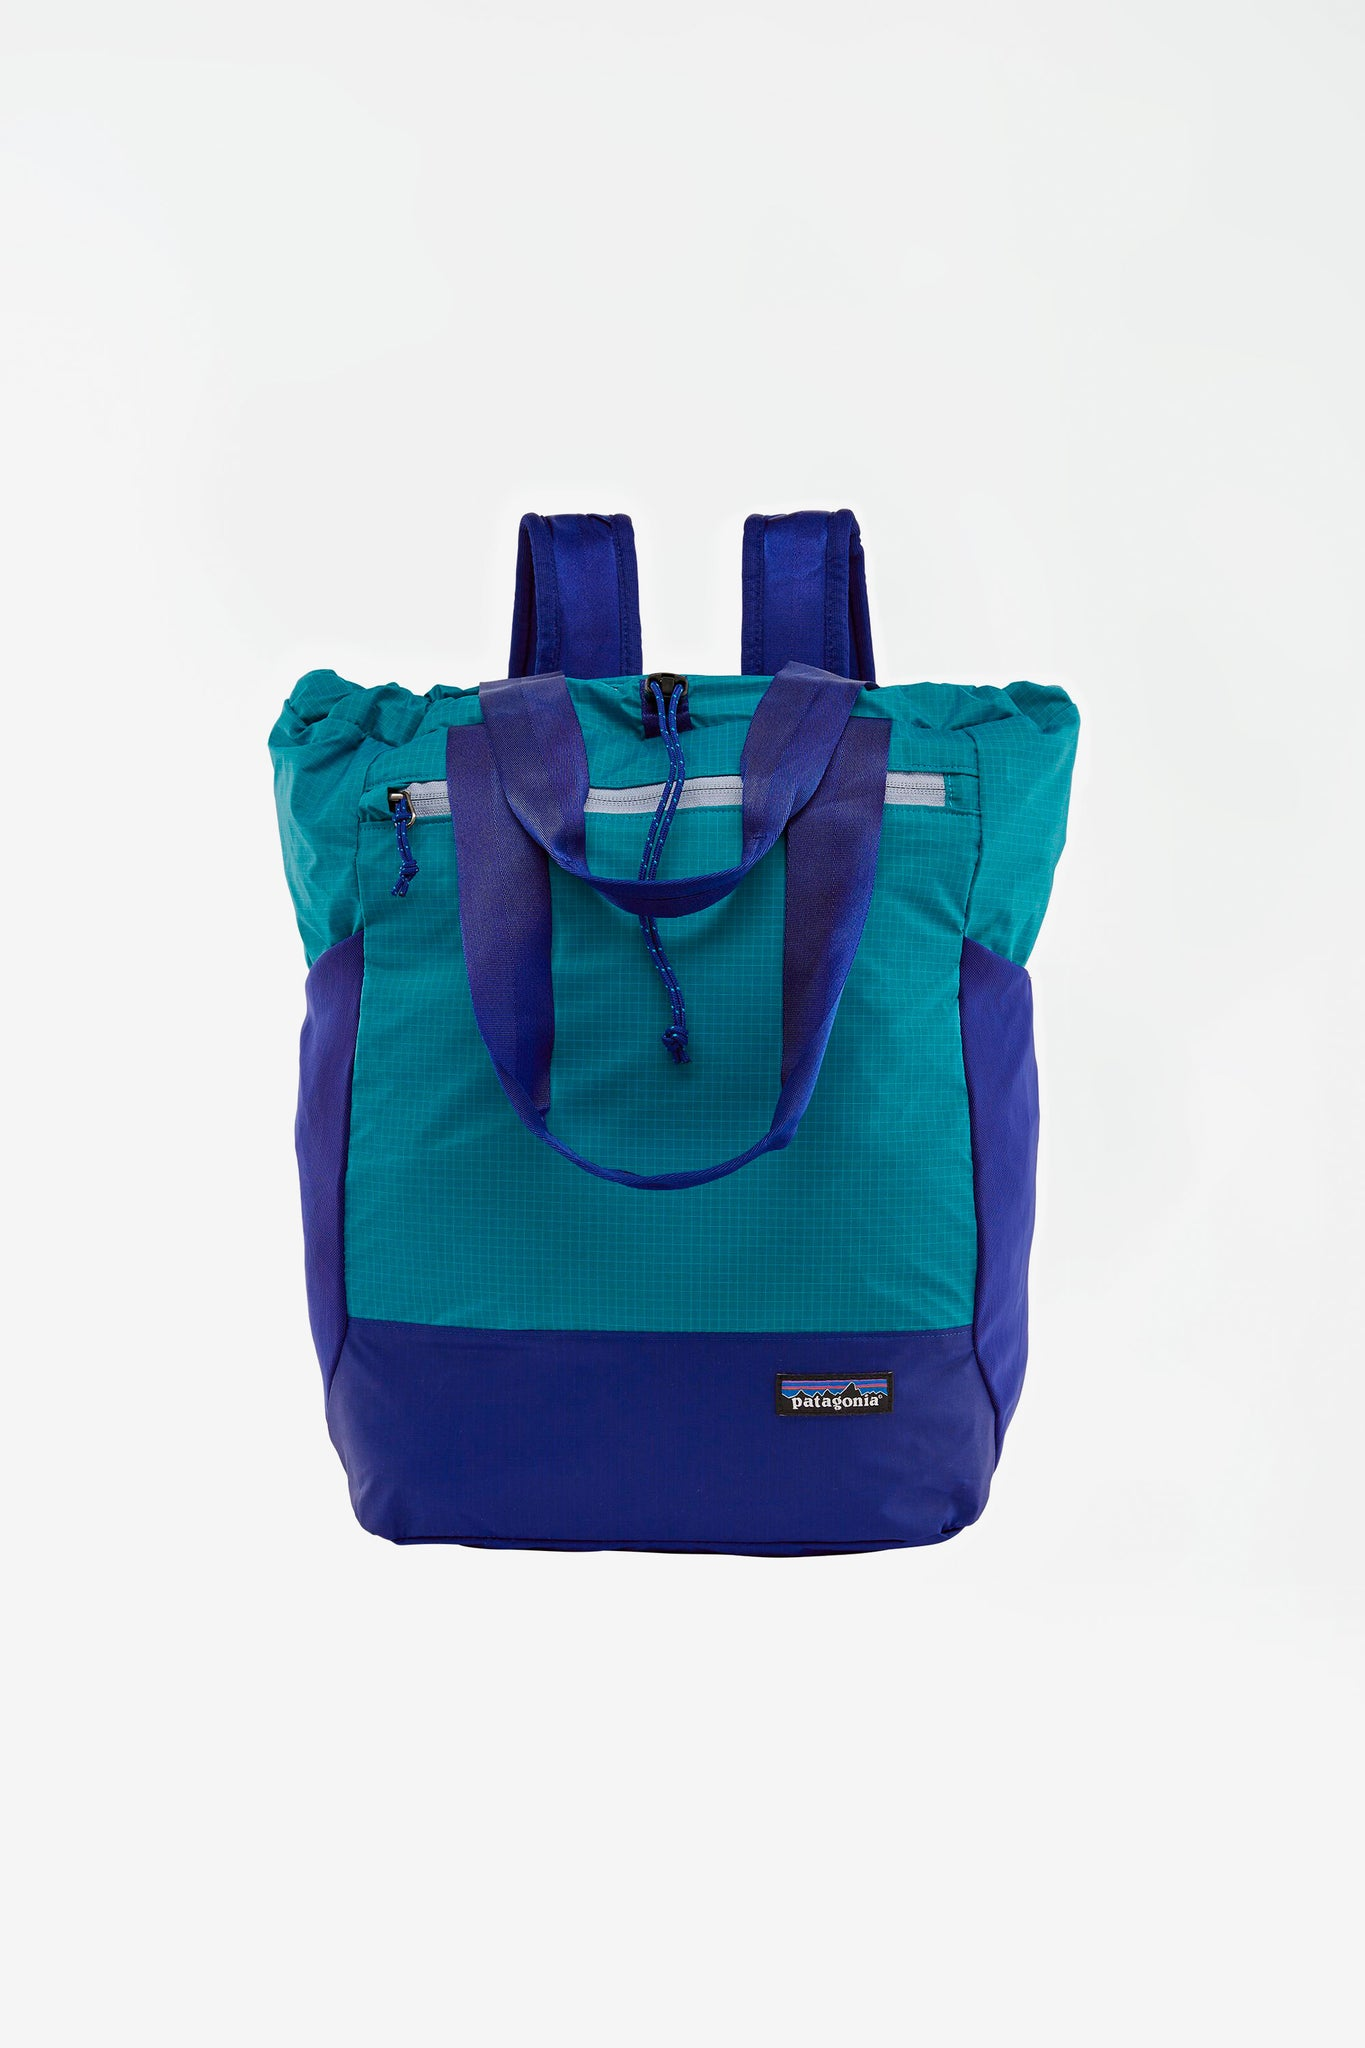 Ultralight blackhole tote pack 27L curaçao blue